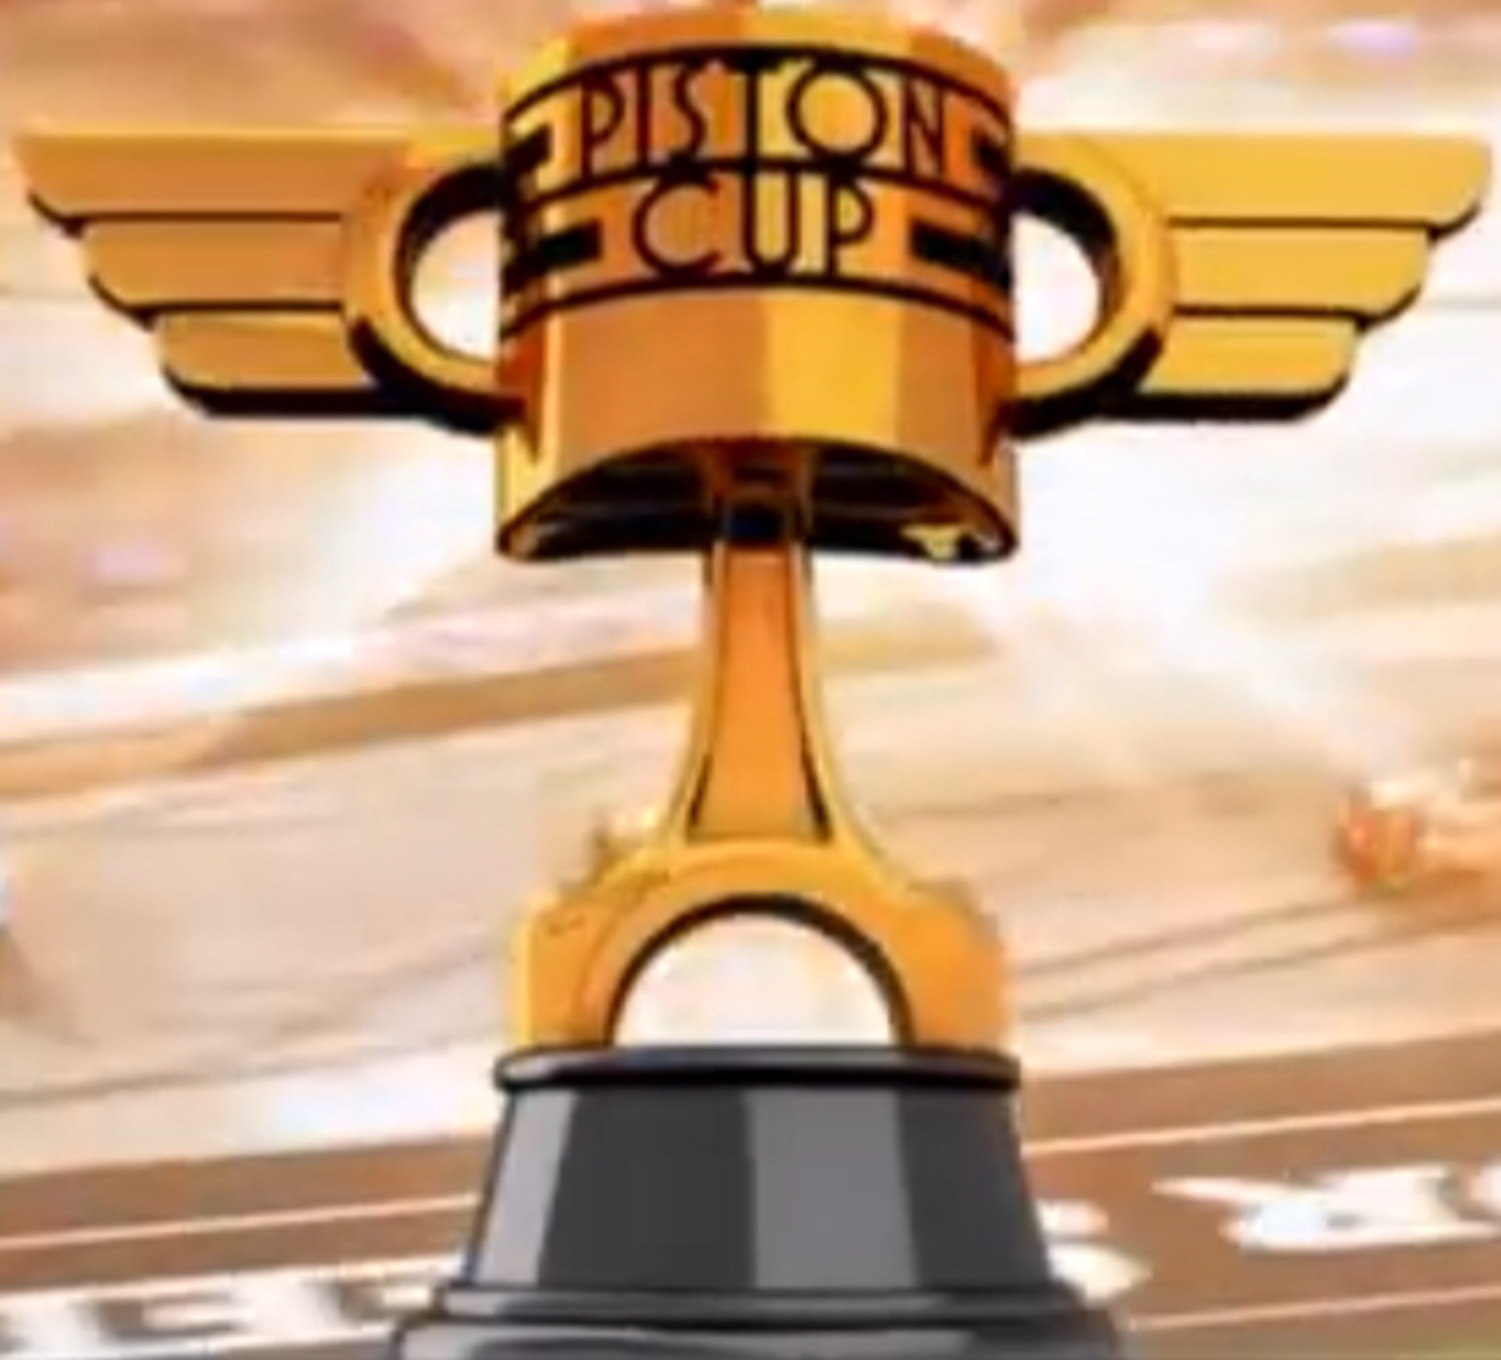 Piston Cup (trophy)